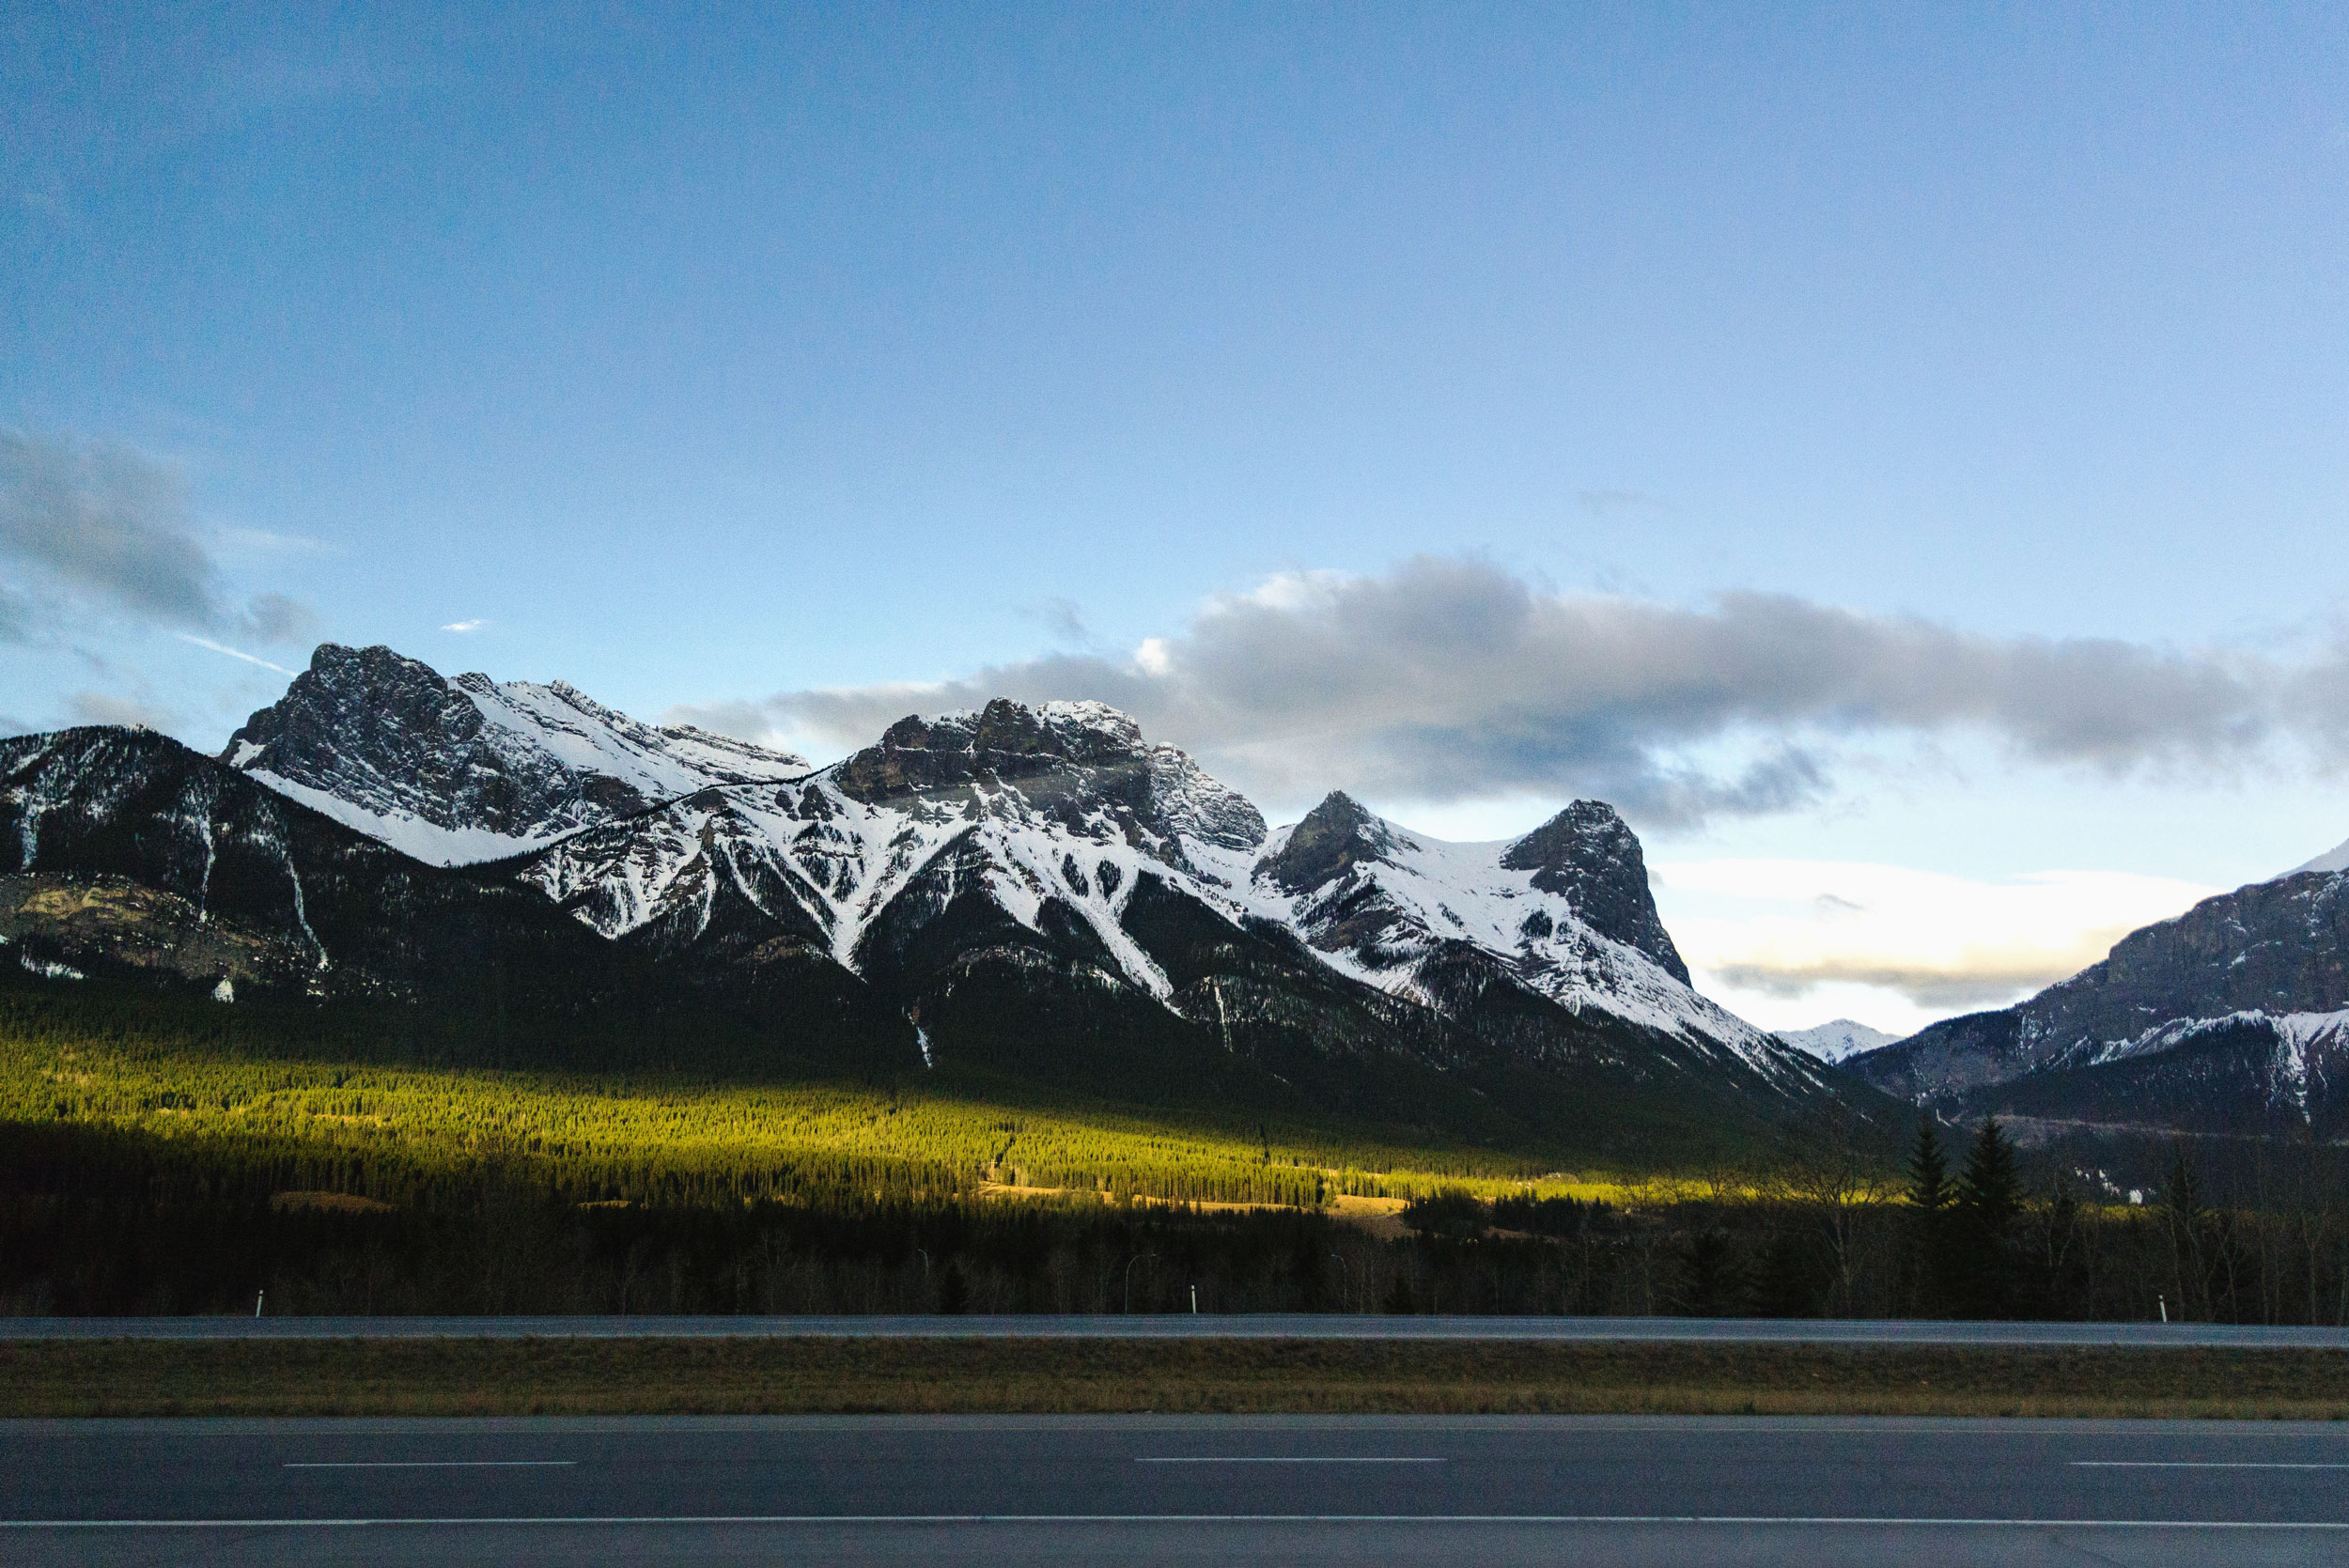 Entering Banff with the morning sunlight shining through